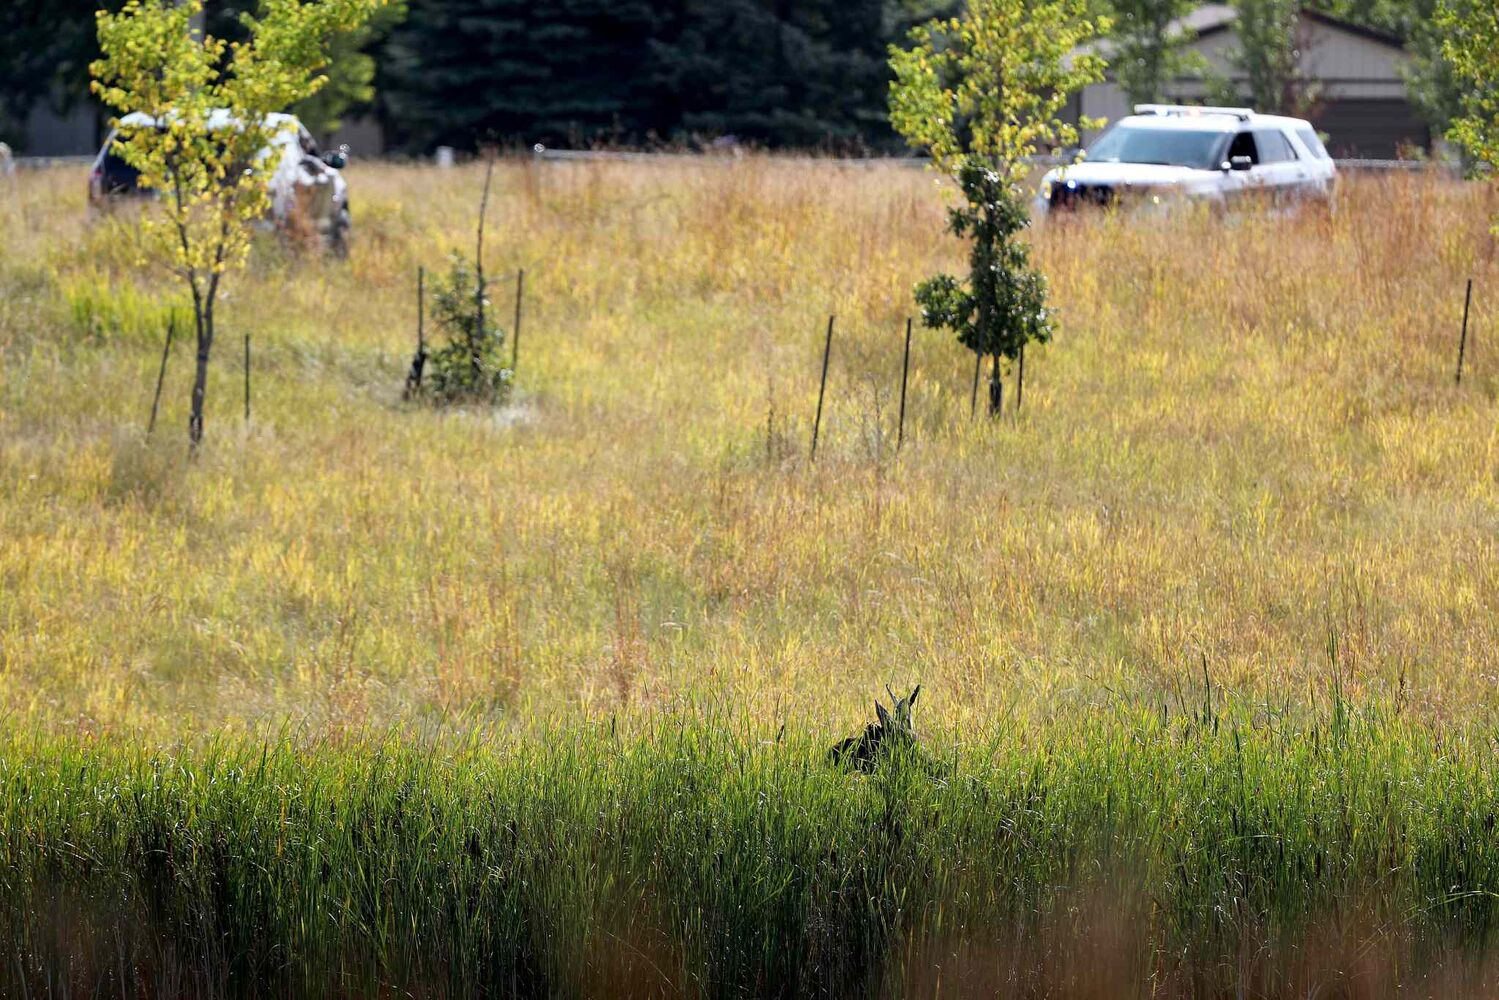 TREVOR HAGAN / WINNIPEG FREE PRESS Winnipeg police and the department of fisheries try to contain a moose near the corner of Pembina Highway and Chancellor Matheson, Saturday.